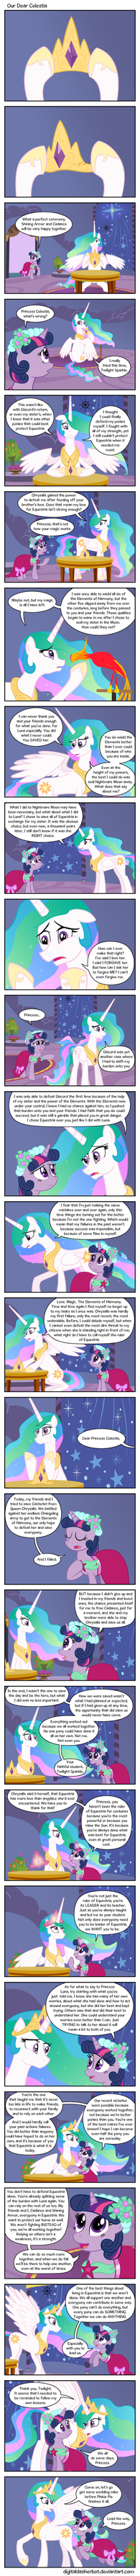 Our Dear Celestia by DigitalDasherBot